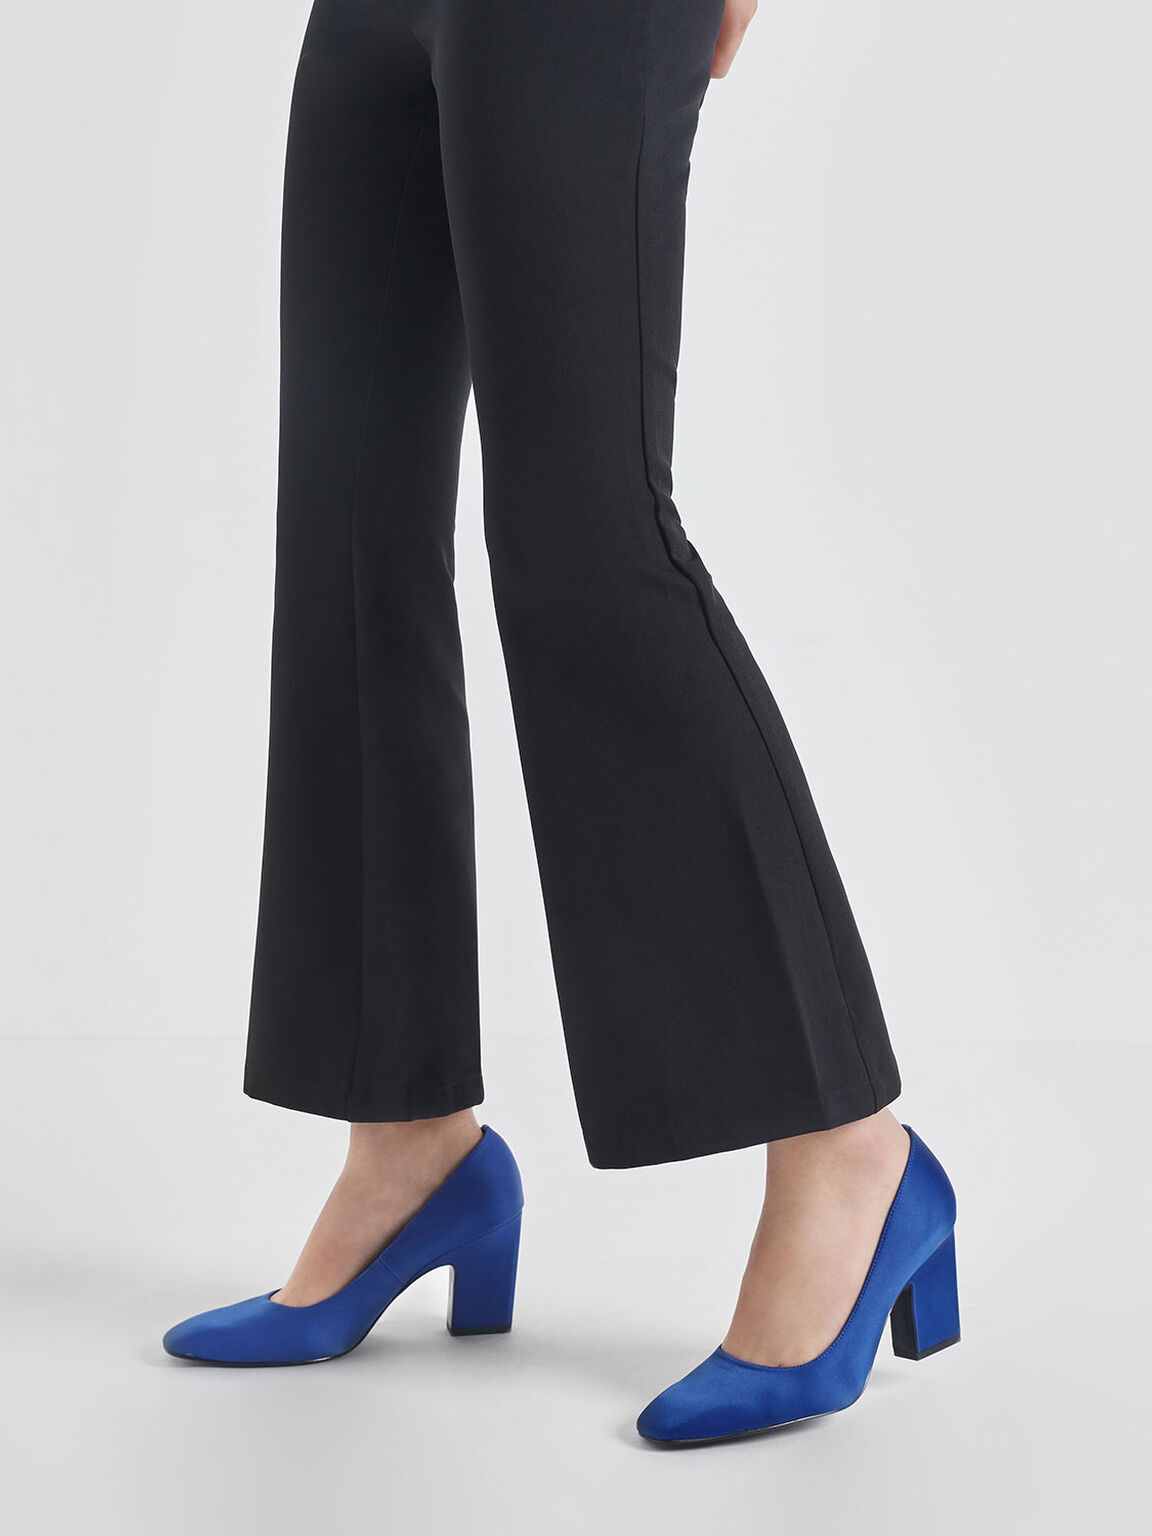 Satin Blade Heel Pumps, Blue, hi-res